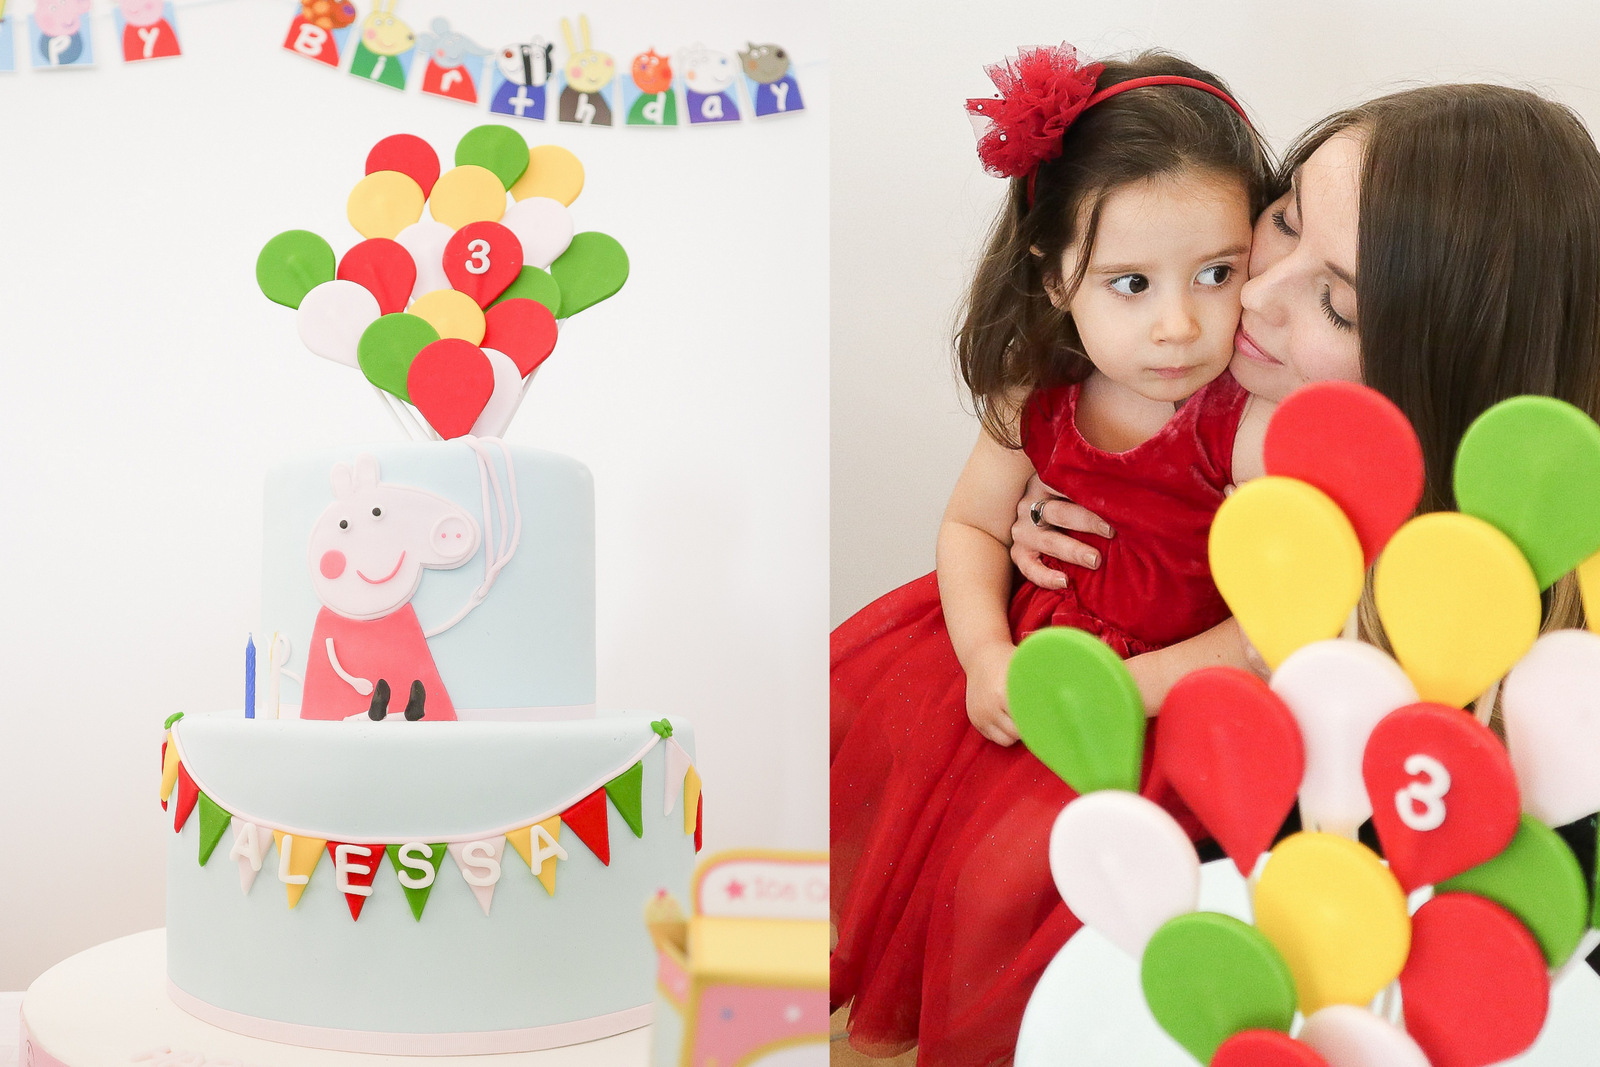 Protected: ALESSANDRA IS 3!